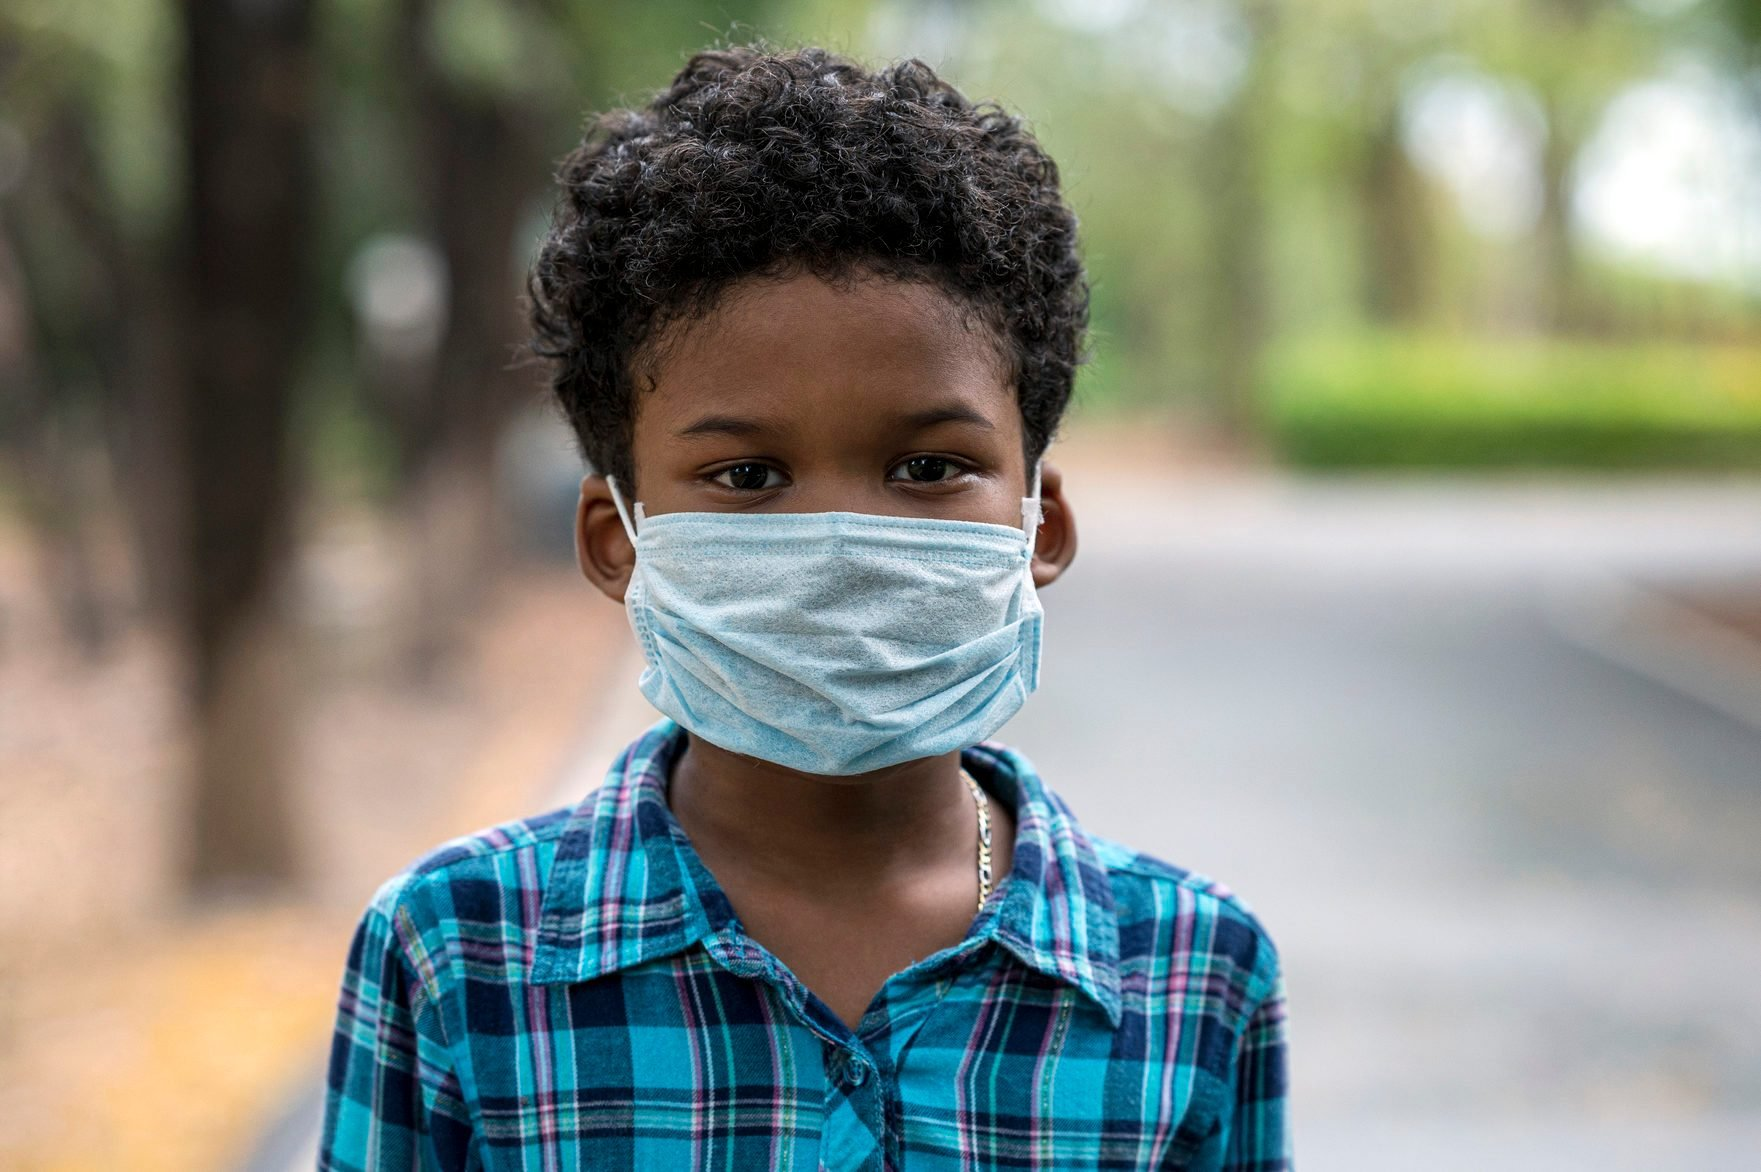 Boys wear face mask in the public park during COVID-19 pandemic. New normal living after COVID-19 pandemic.